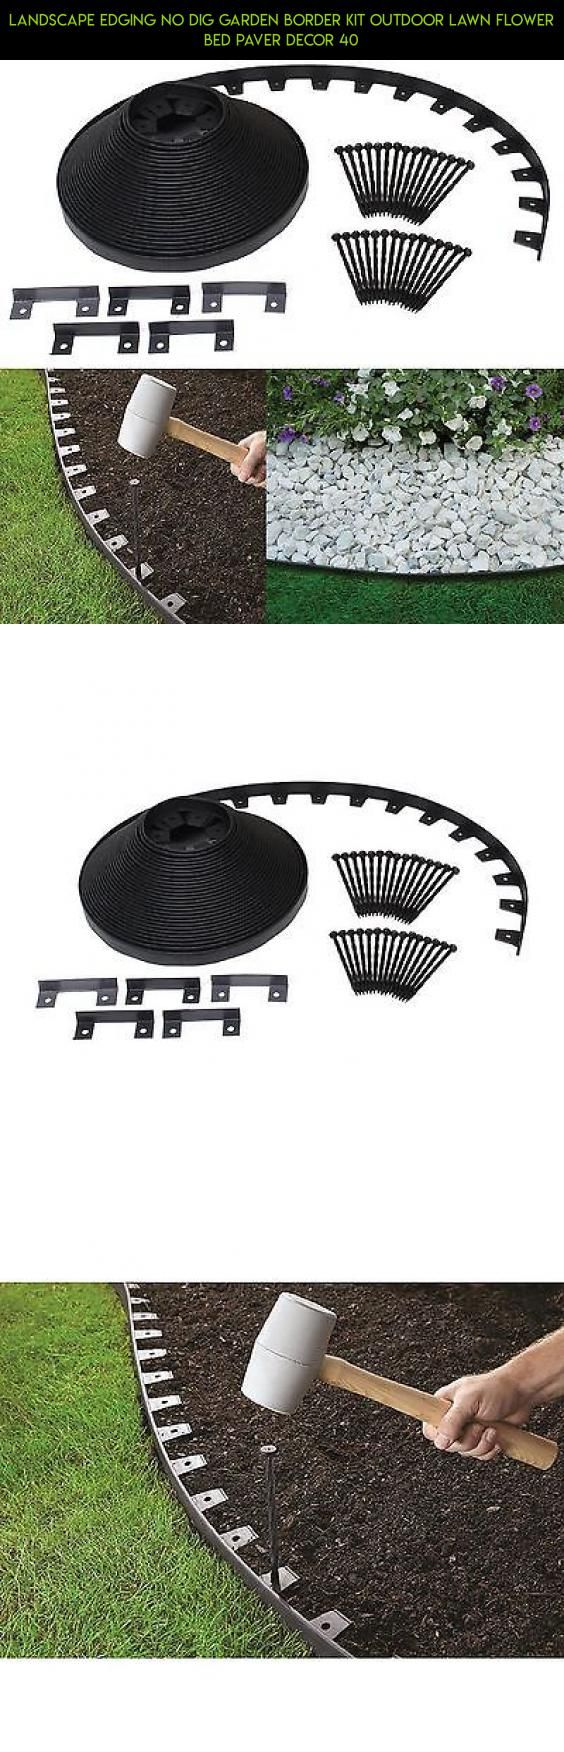 Landscape Edging No Dig Garden Border Kit Outdoor Lawn Flower Bed Paver Decor 40 #tech #plans #gardening #parts #fpv #drone #kit #technology #shopping #gadgets #camera #edging #racing #products